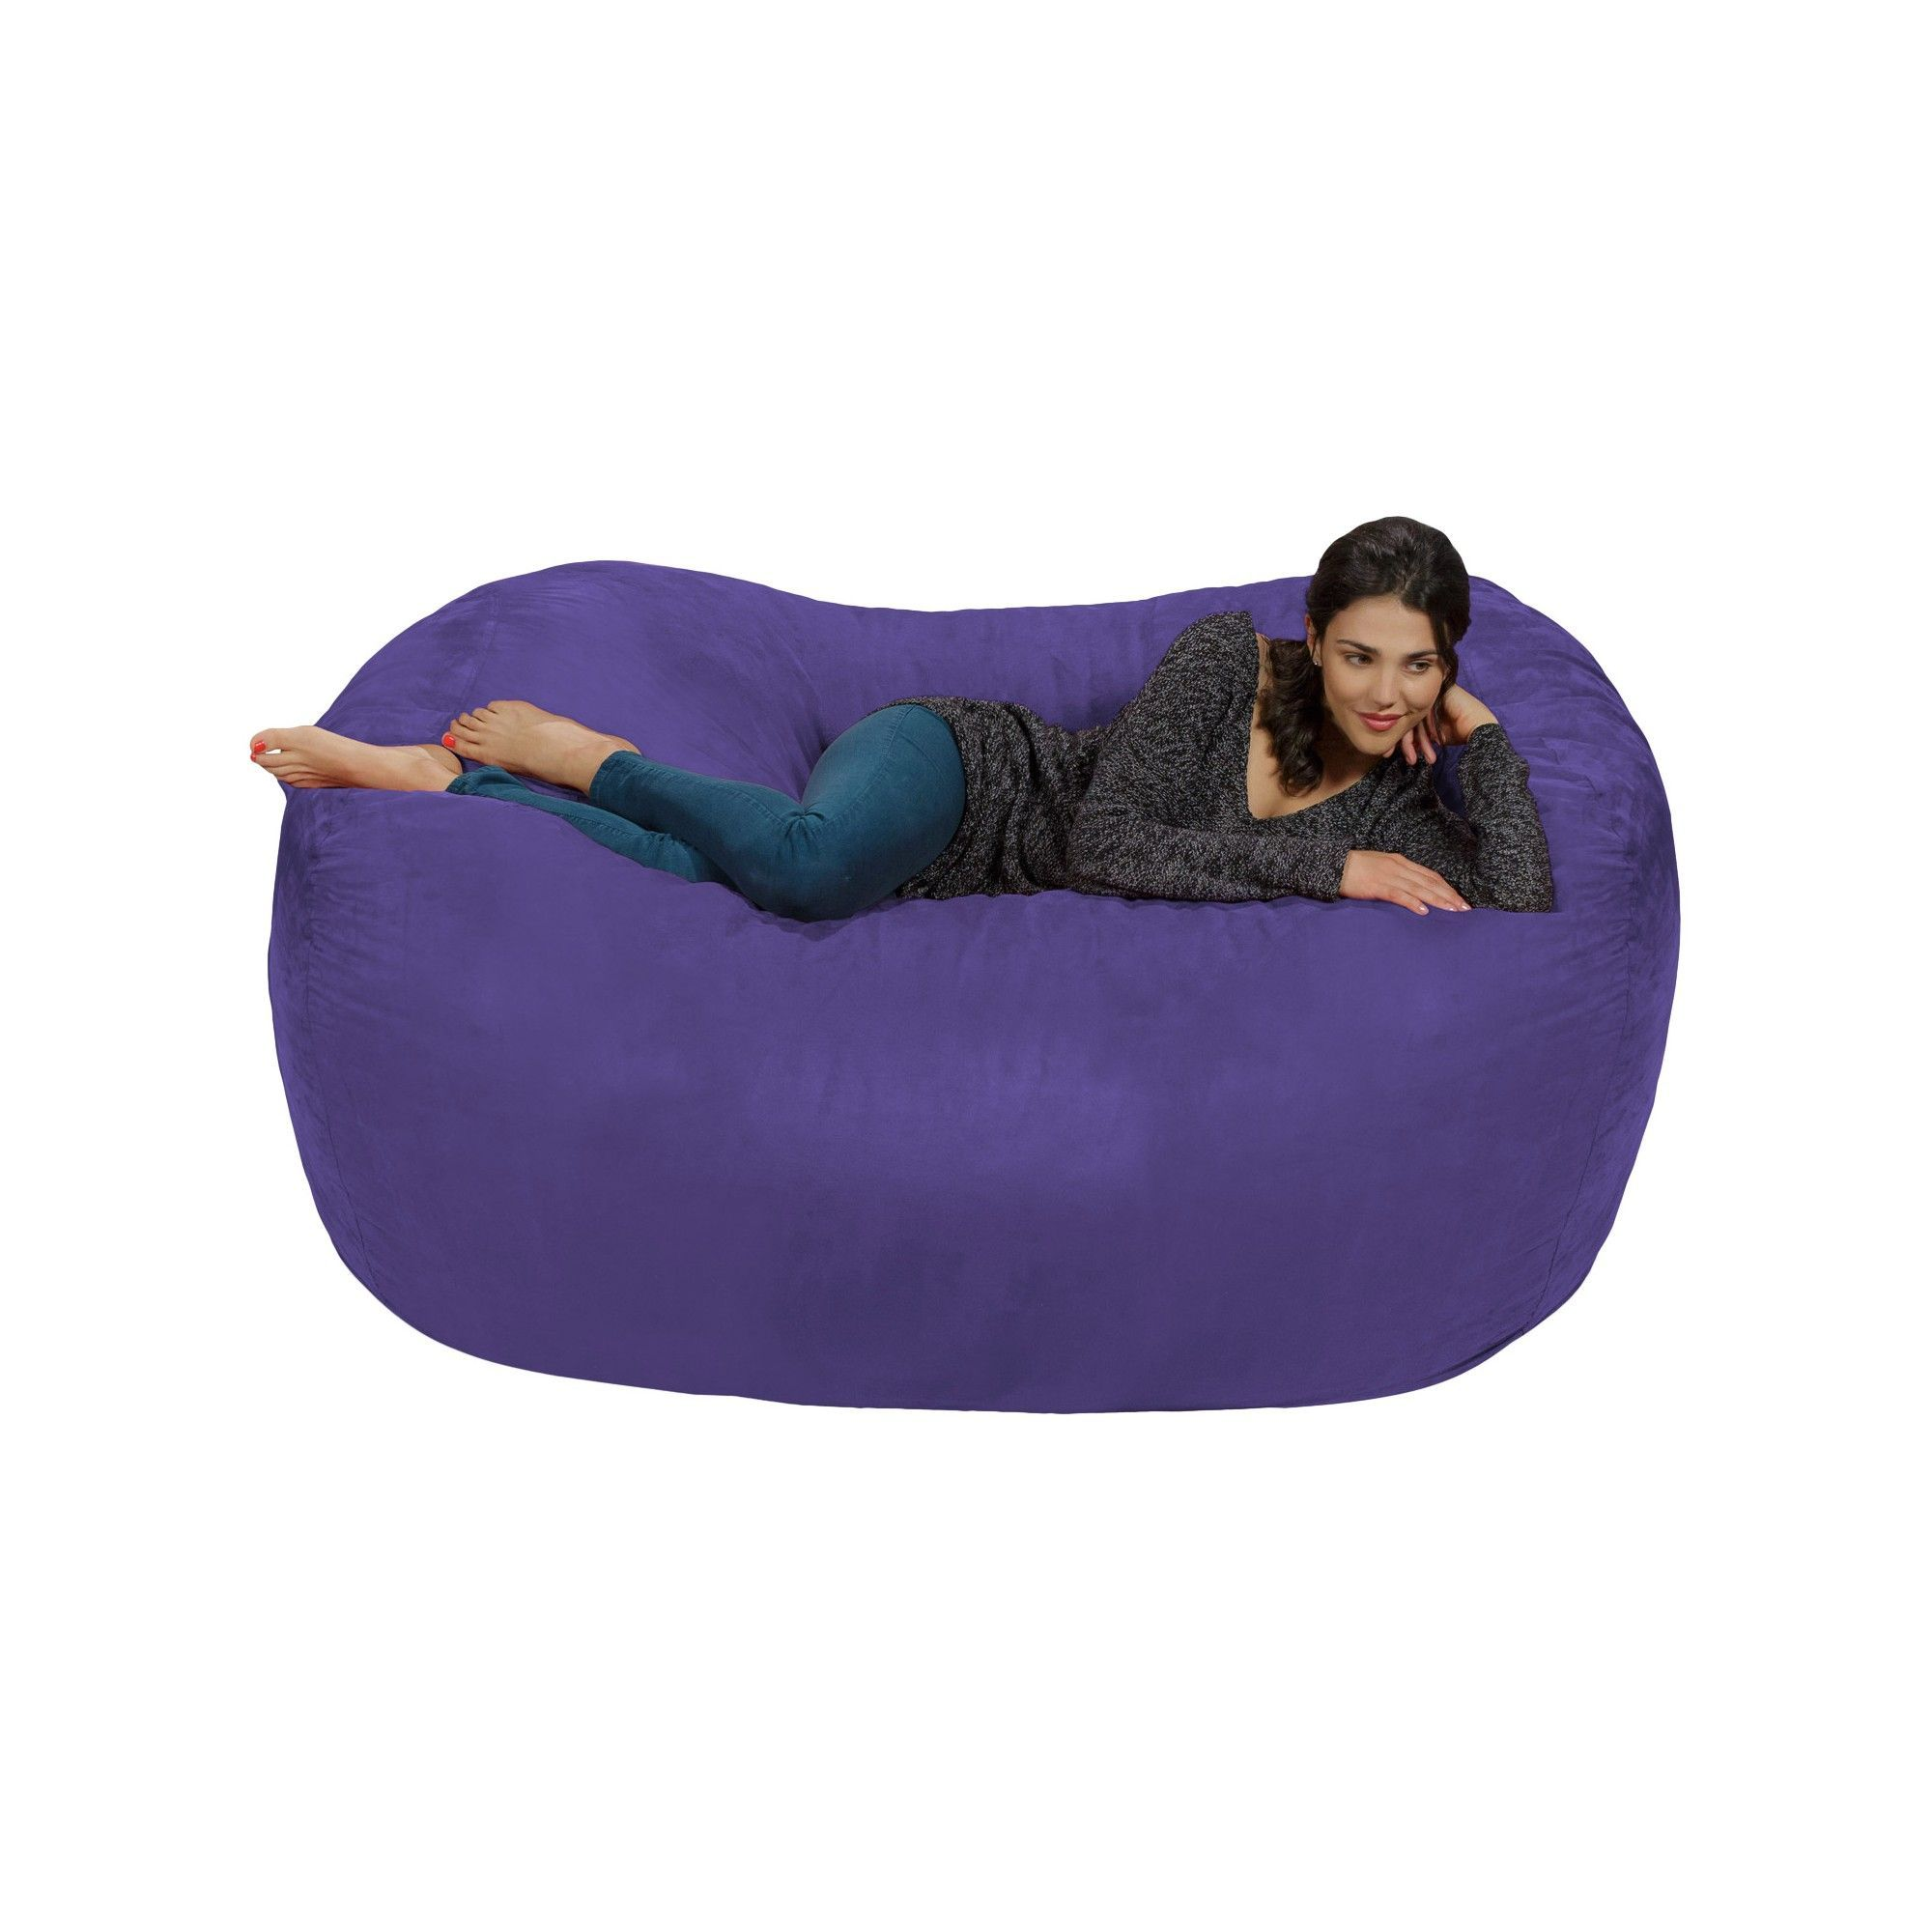 Surprising 6Ft Microsuede Lounger Violet Relax Sacks Purple Theyellowbook Wood Chair Design Ideas Theyellowbookinfo